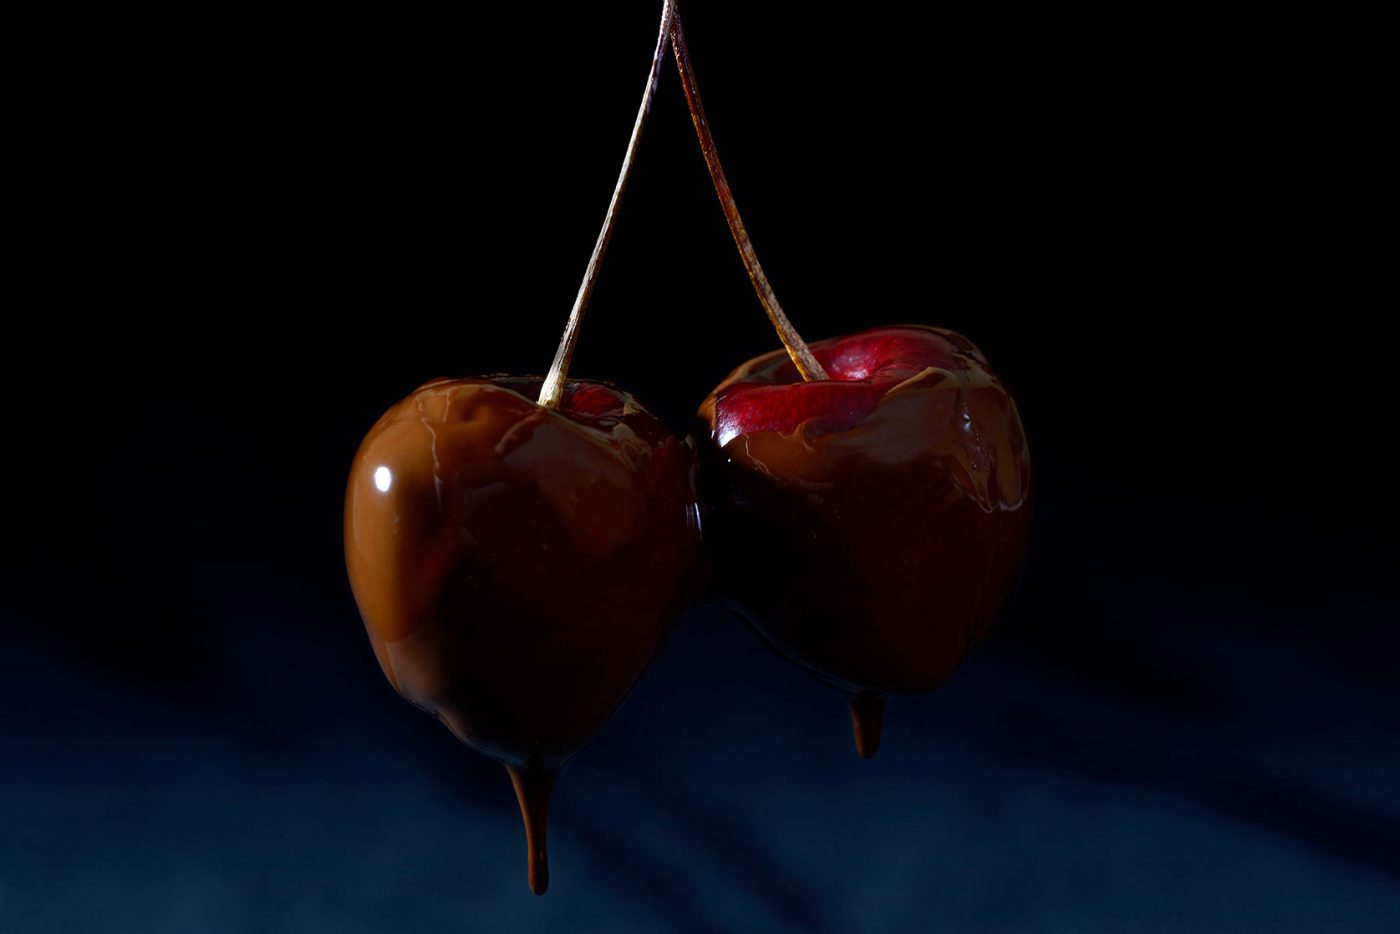 two fresh cherries dripping in chocolate